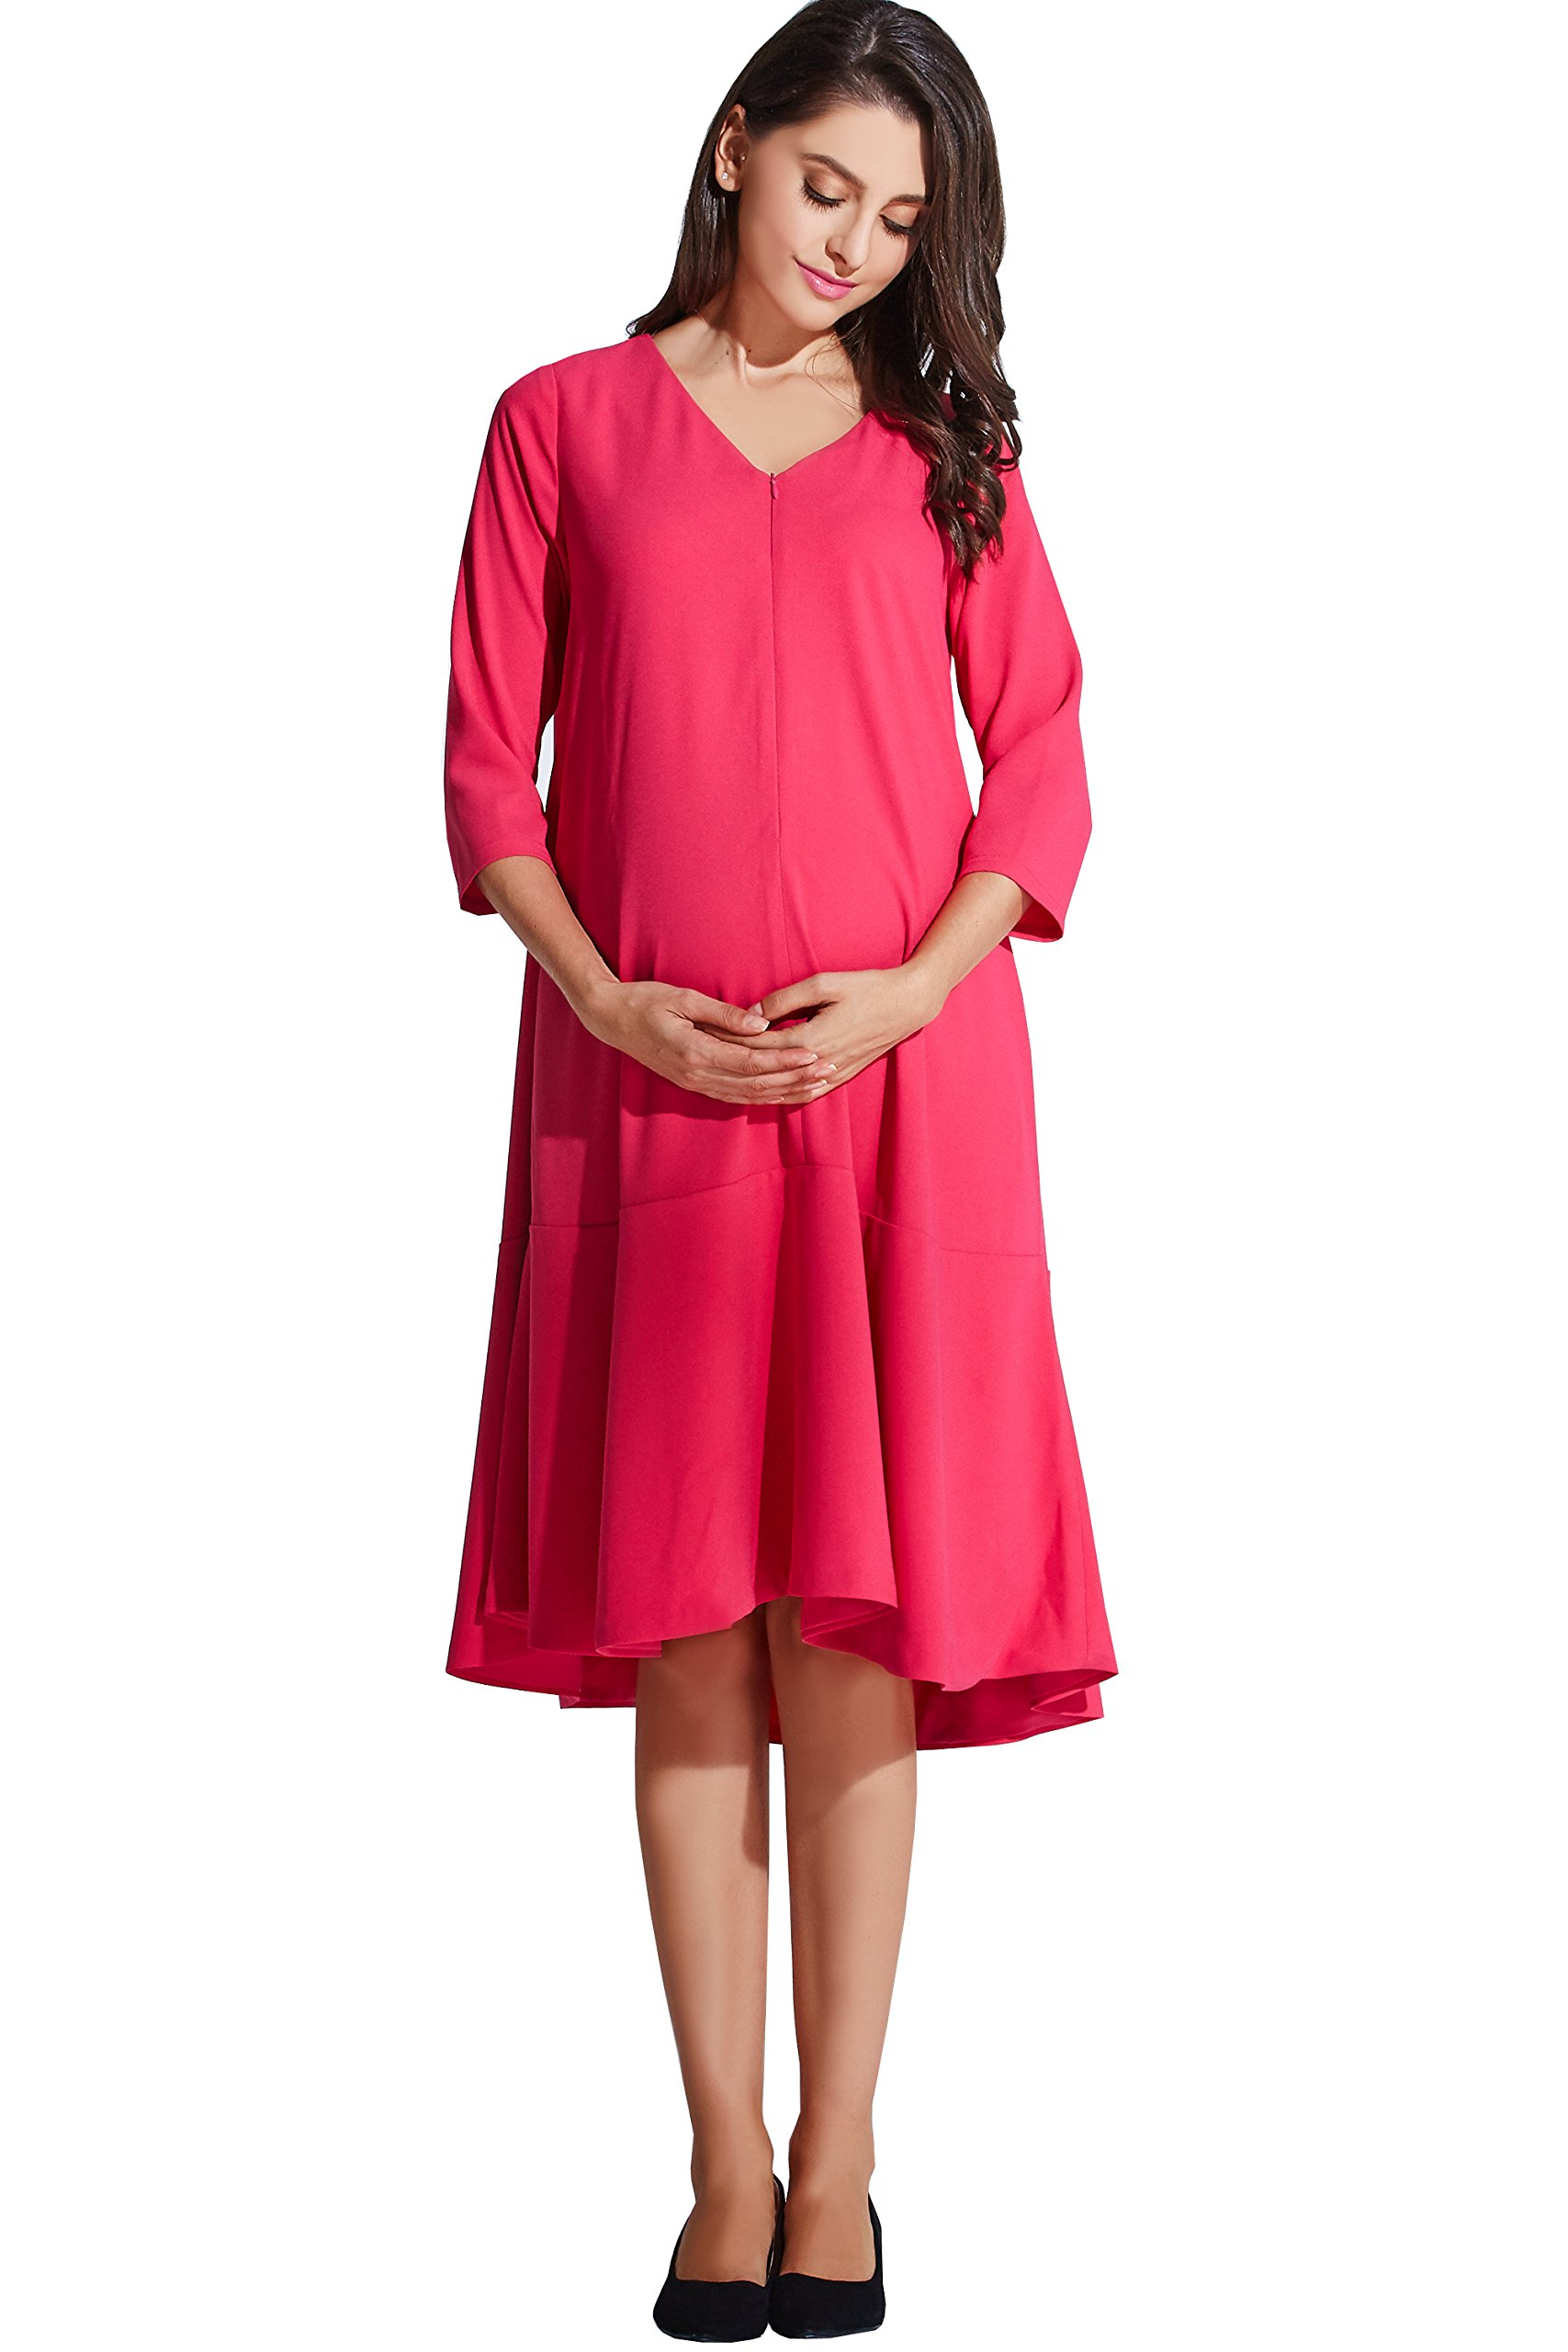 Sweet Mommy Maternity and Nursing Free Fit Baby Shower Dress Hot Pink, M by Sweet Mommy (Image #4)